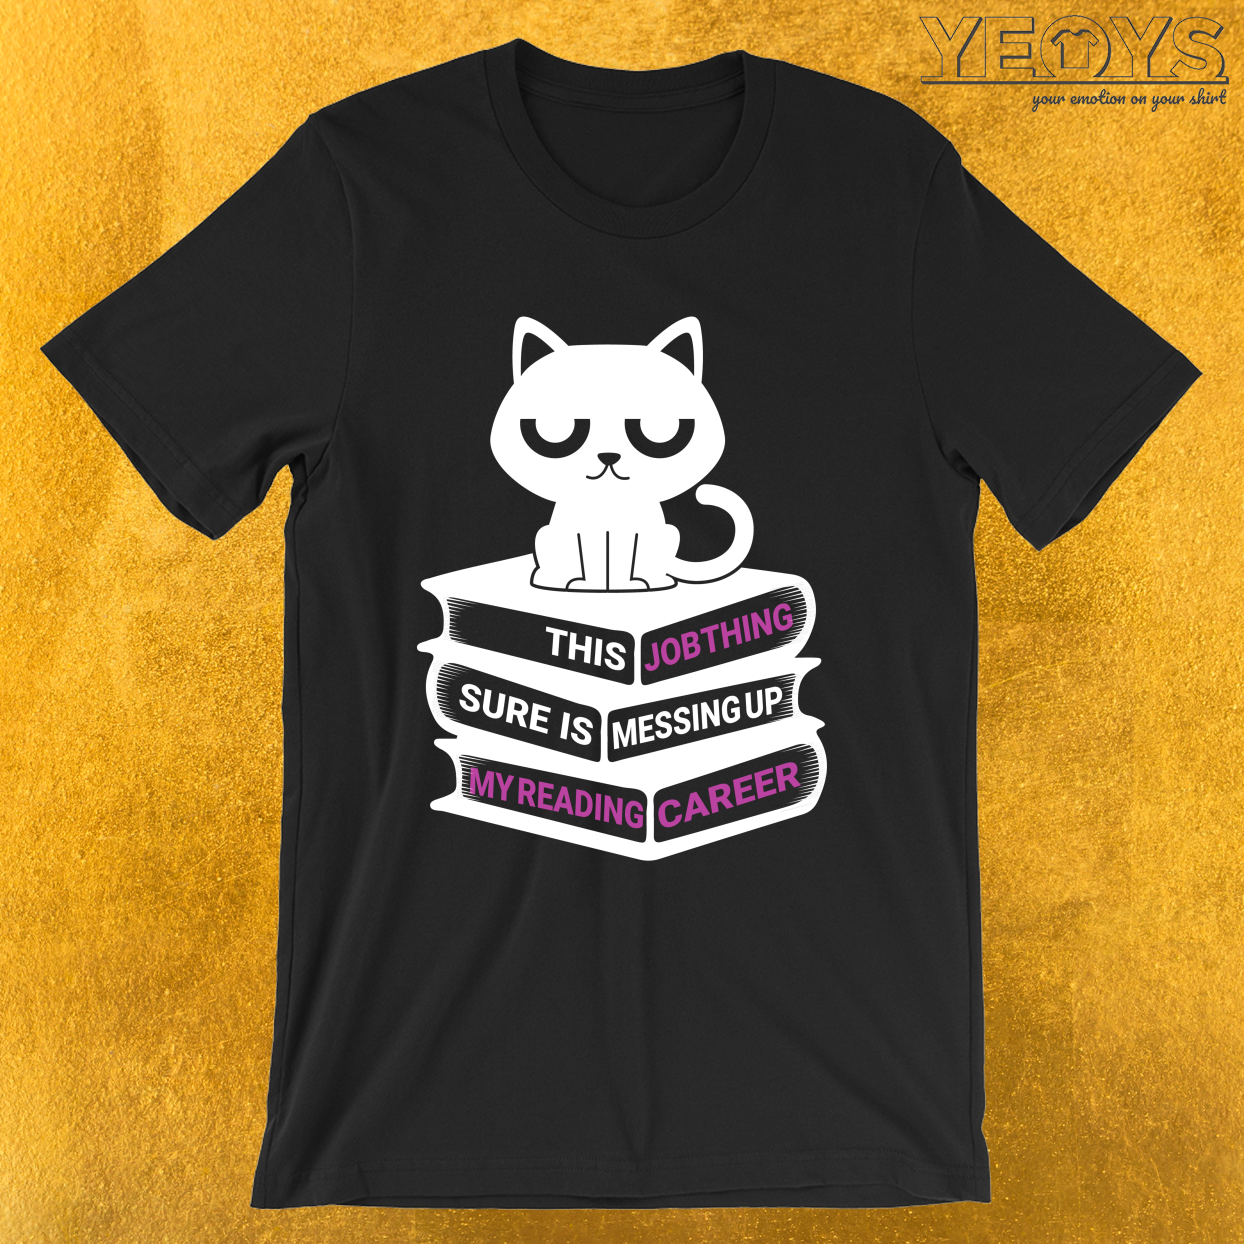 Job Thing Is Messing Up My Reading Career – Cat Reading Tee